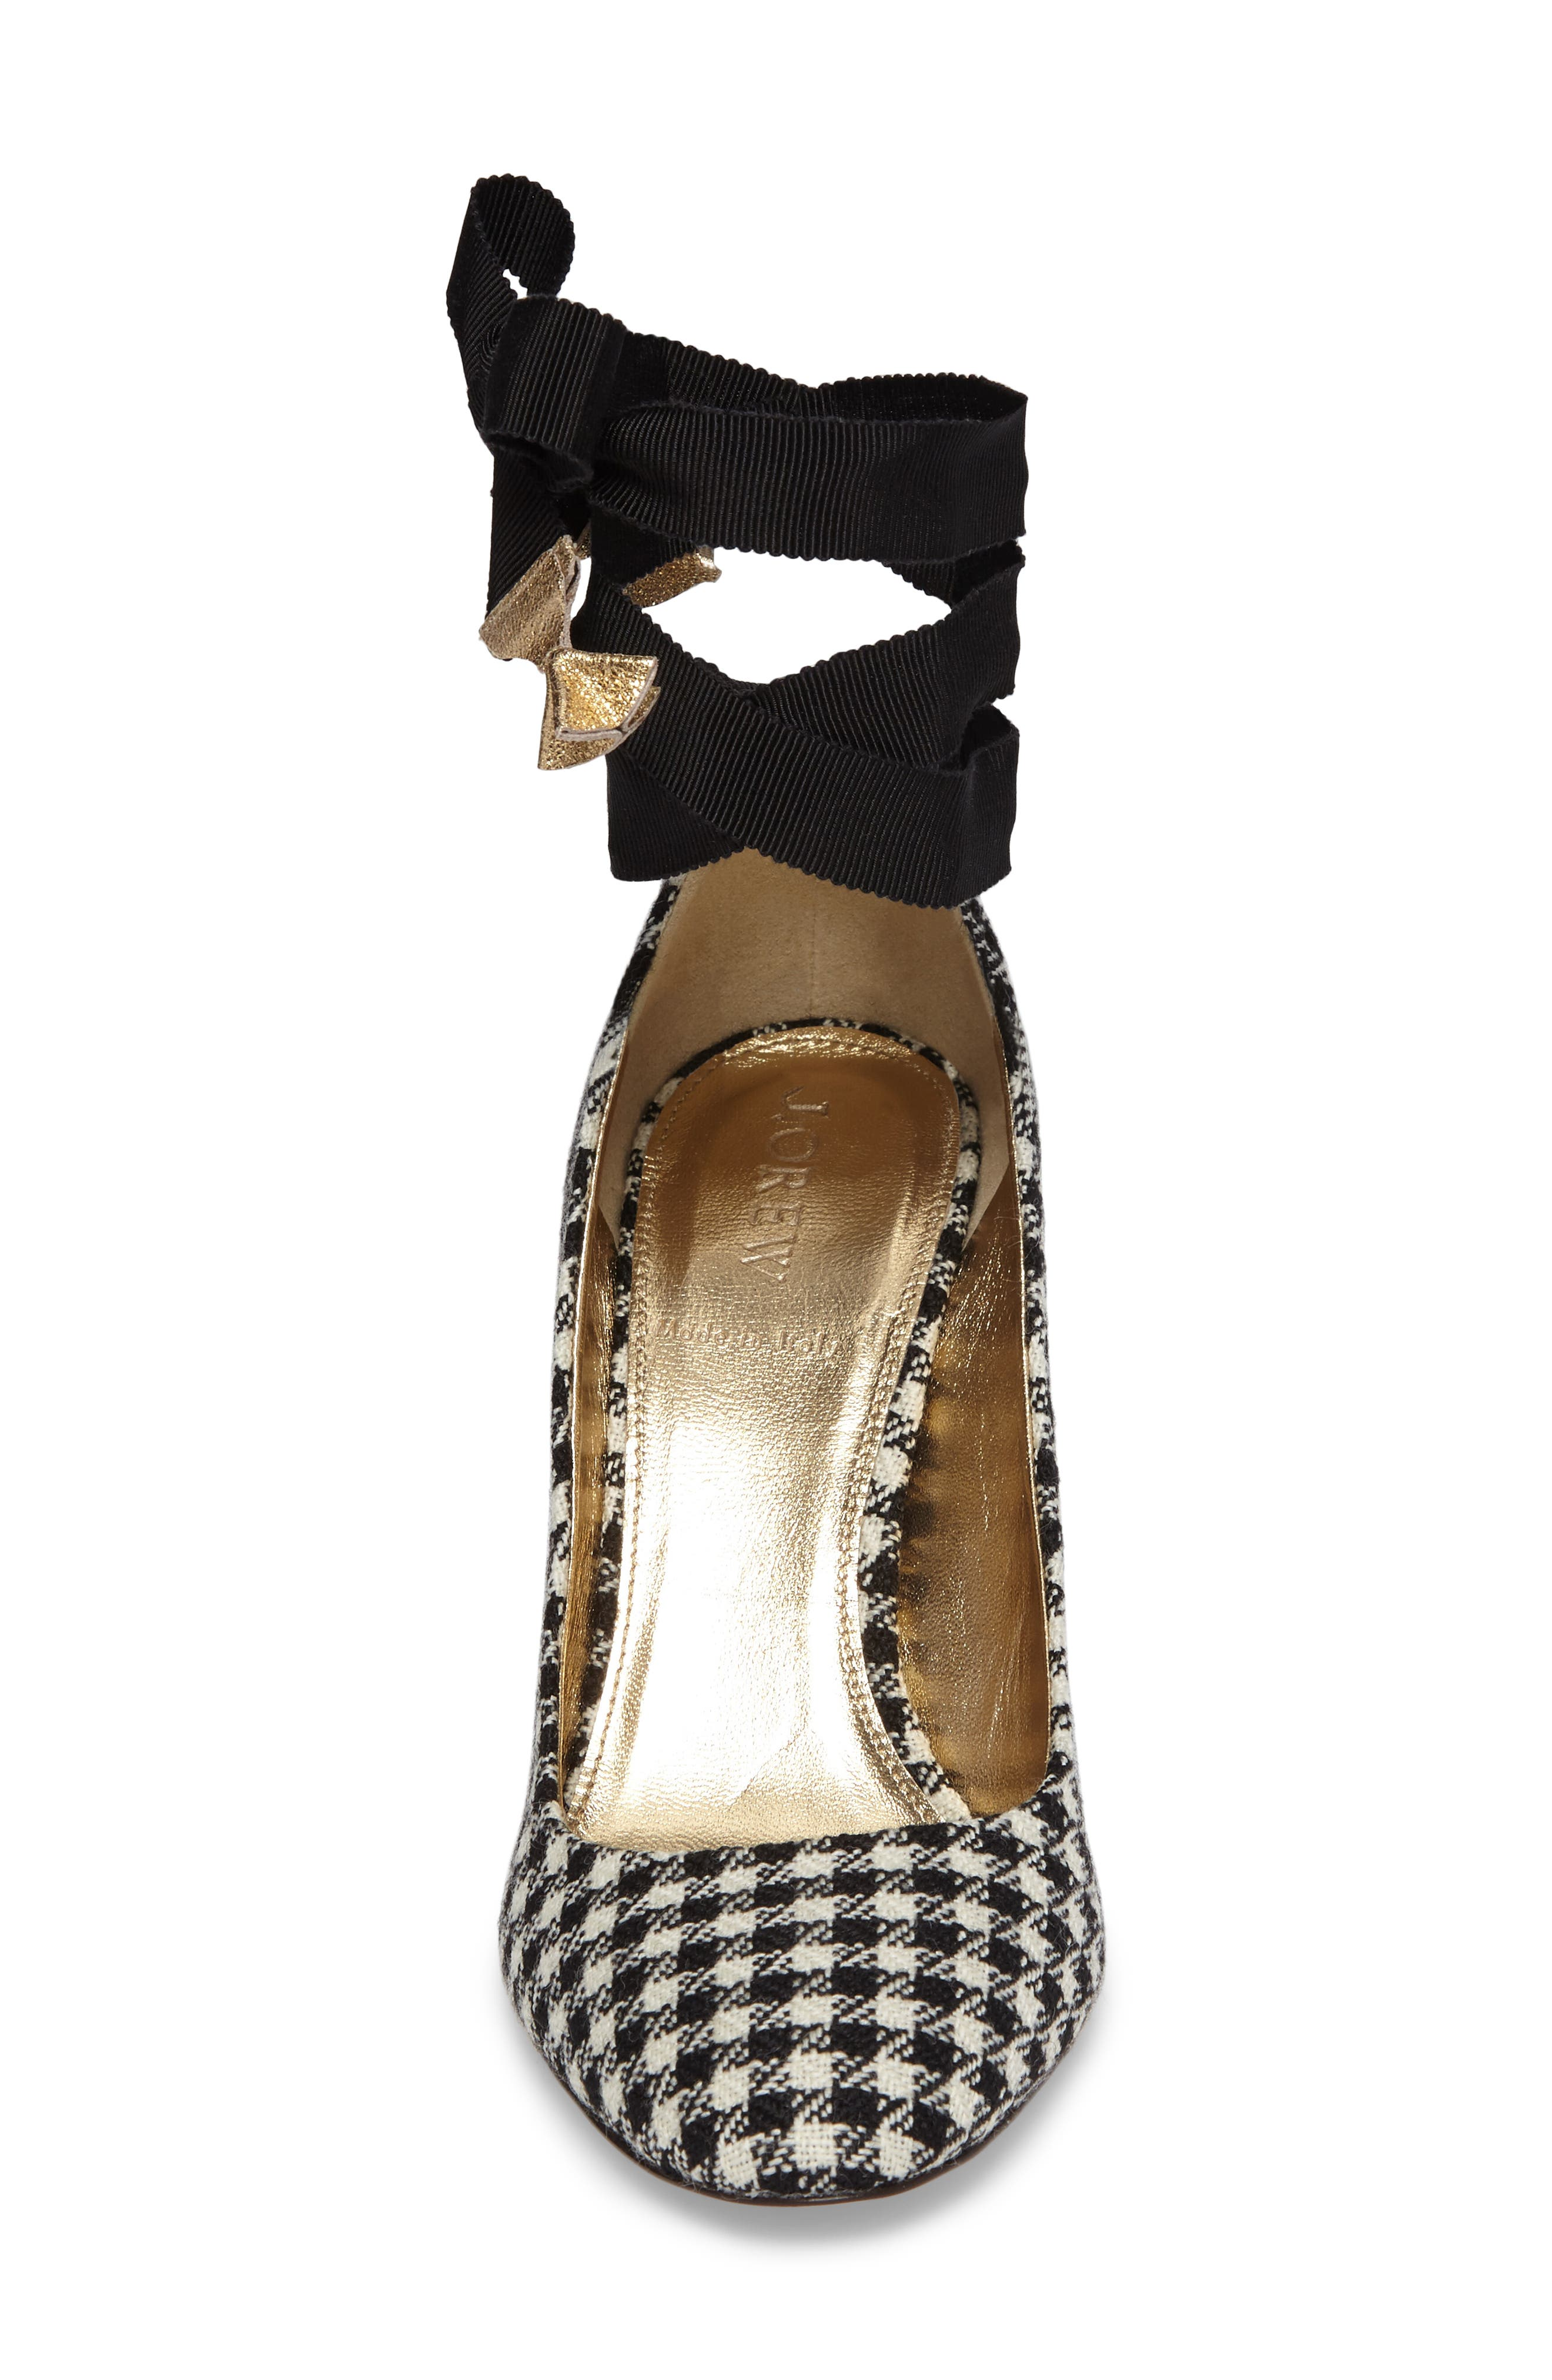 J. Crew Bell Ankle Tie Pump,                             Alternate thumbnail 4, color,                             Black/ Ivory Fabric